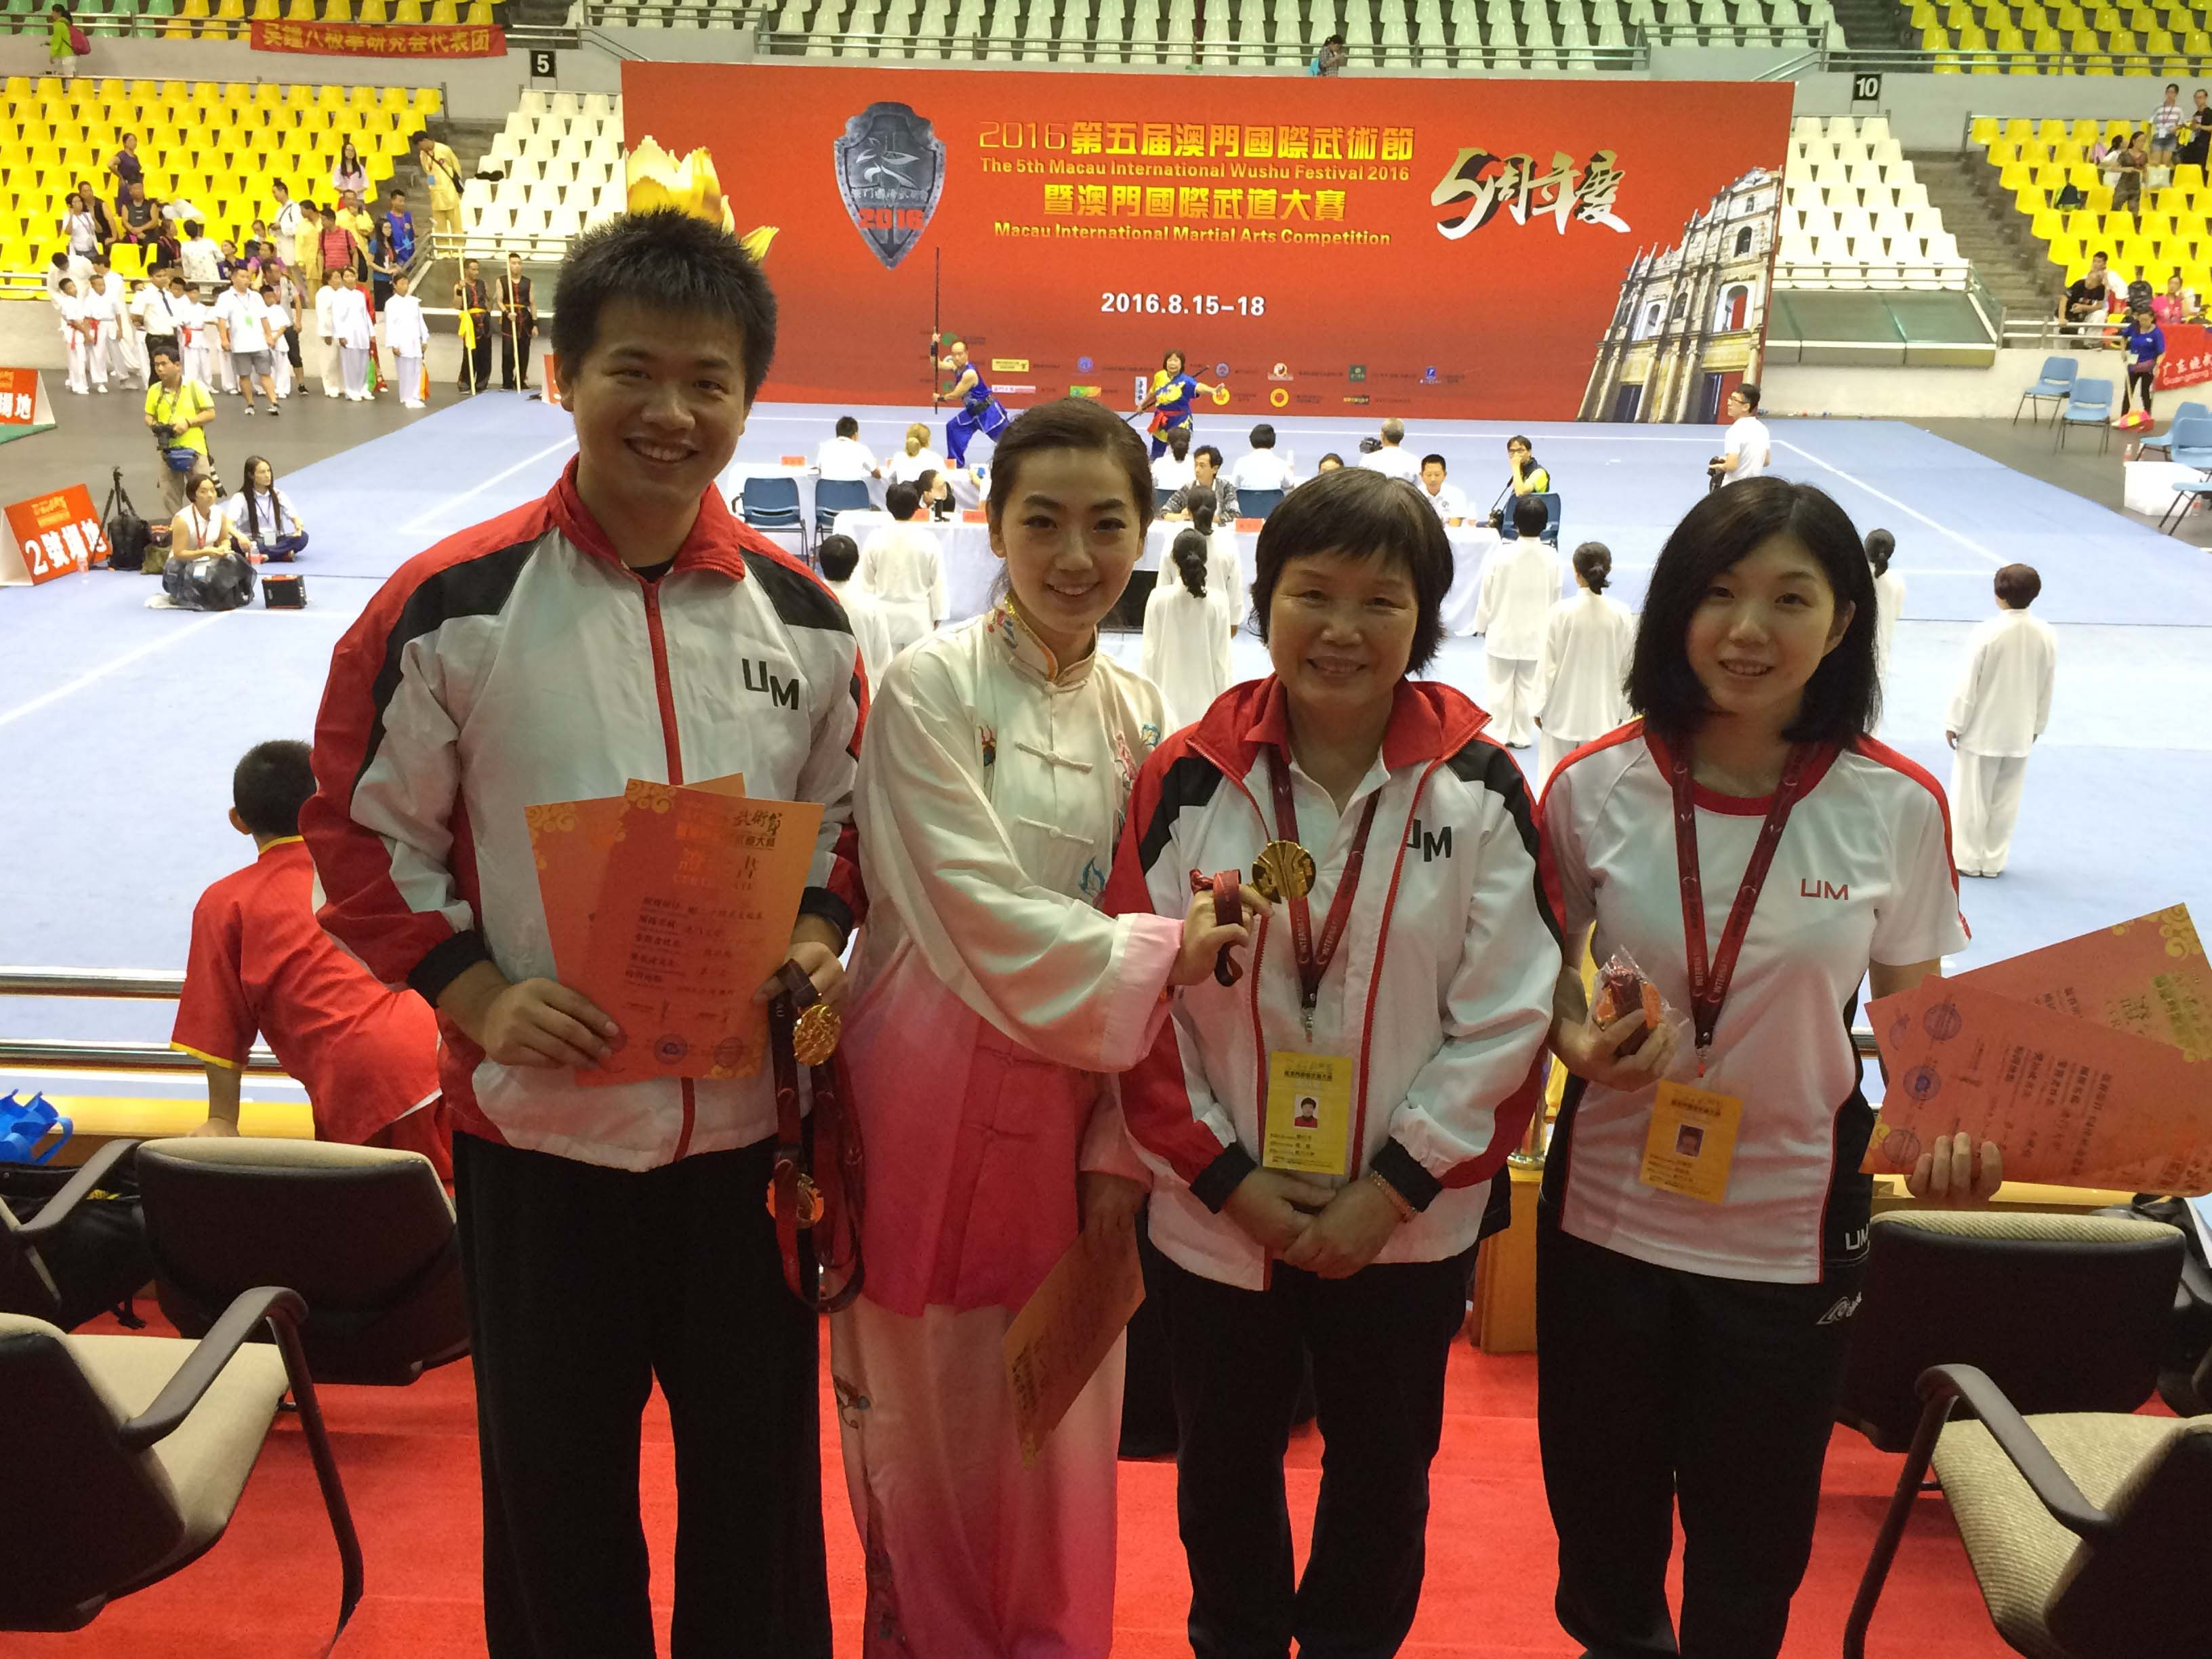 UM's Martial Arts Team wins seven gold medals and one silver medal